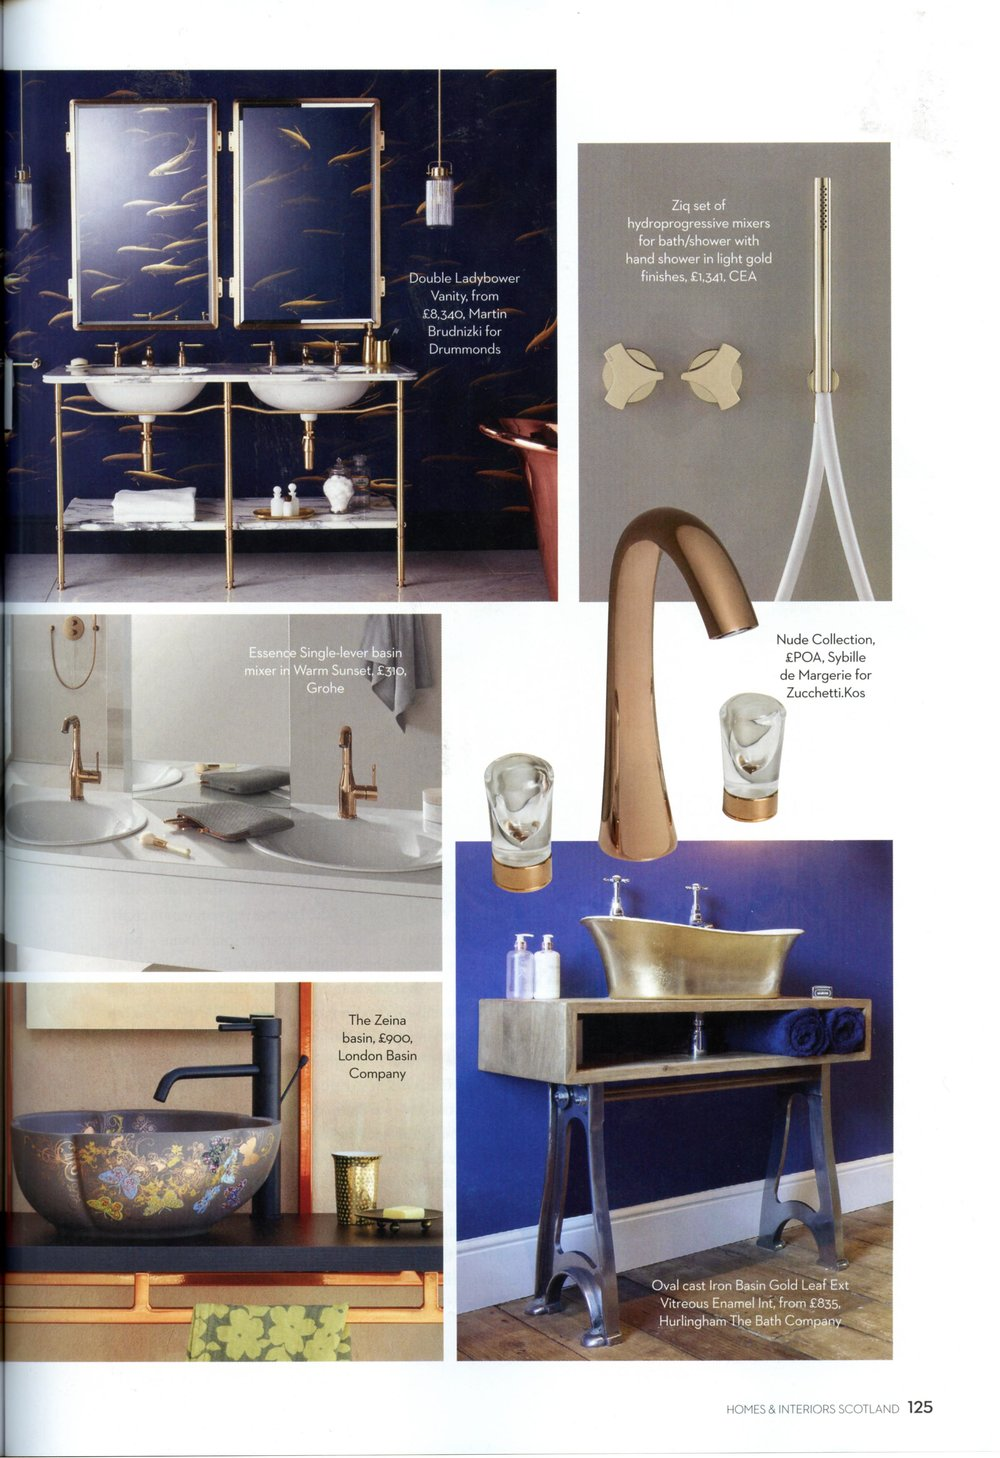 Home & Interiors Scotland May & June 2018 LBC 2.jpg